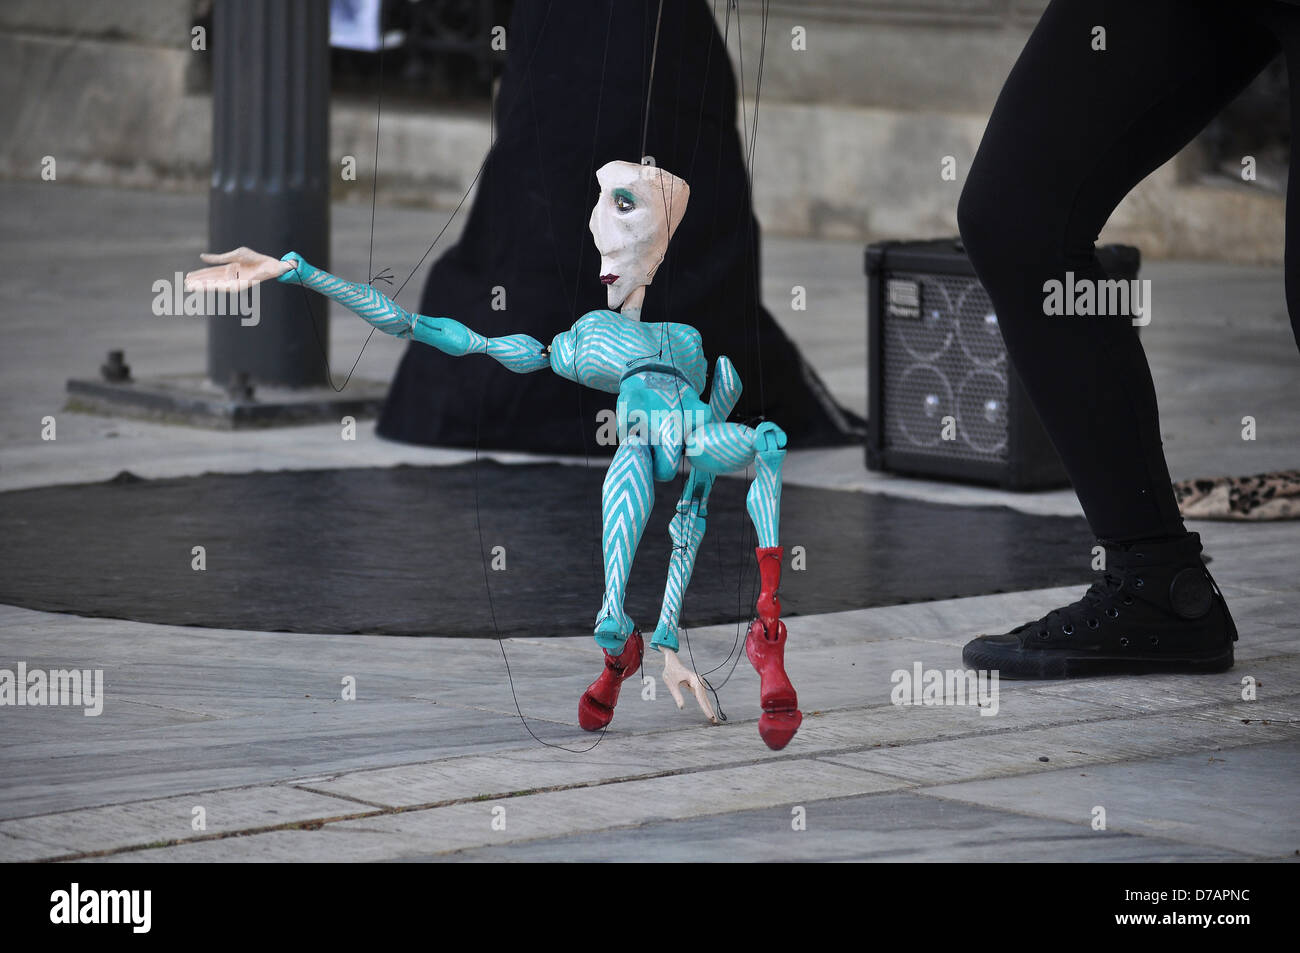 marionette dancing stock photos marionette dancing stock images